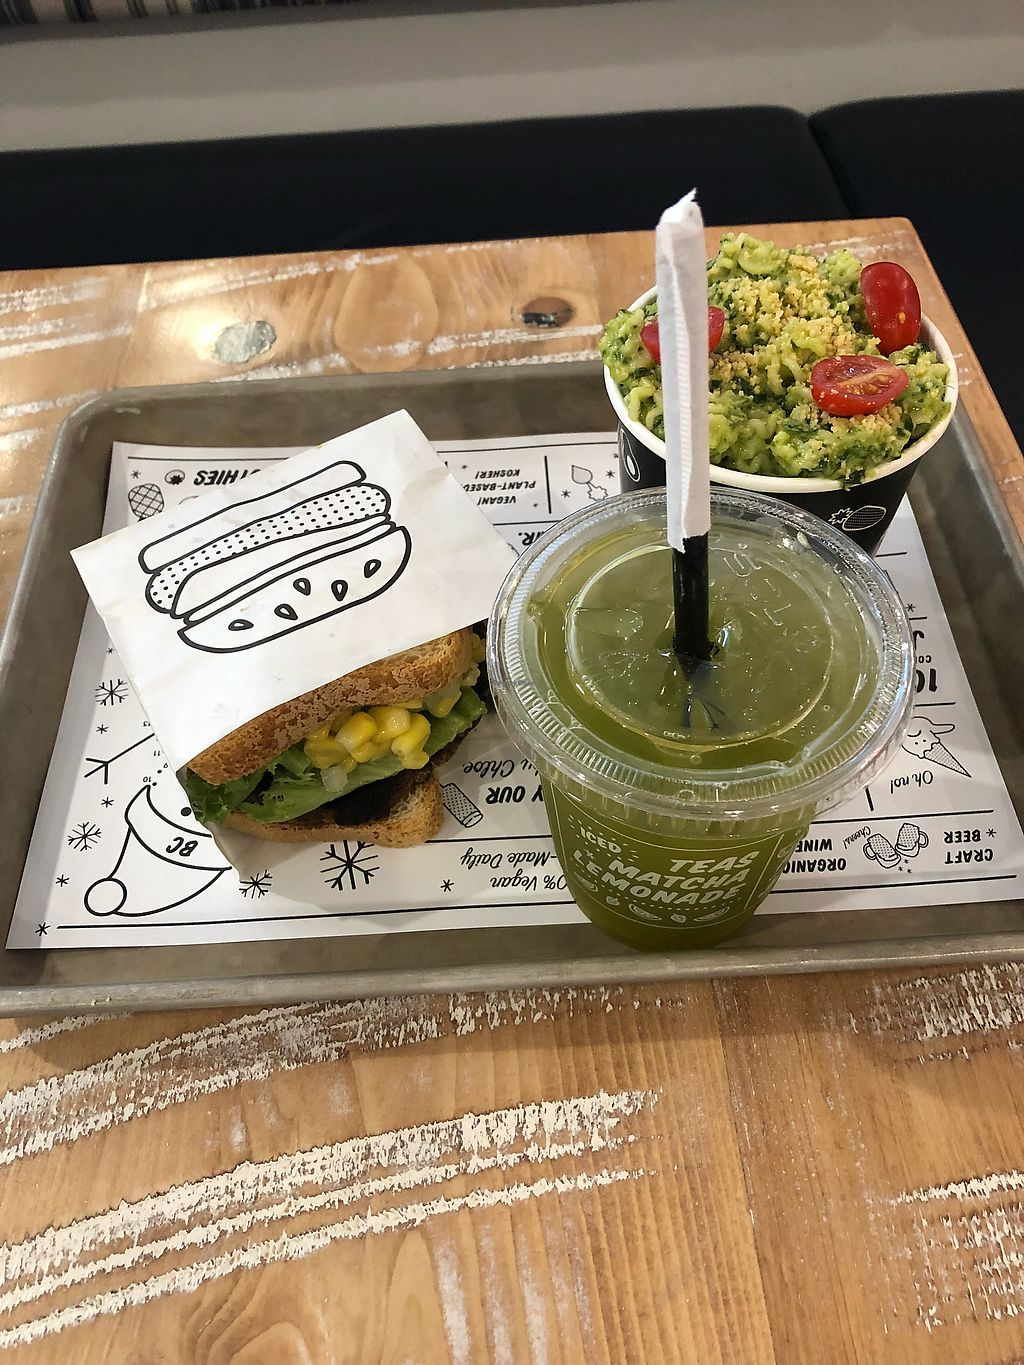 "Photo of By Chloe - Fenway  by <a href=""/members/profile/alisonwaskelis"">alisonwaskelis</a> <br/>guac burger, avocado pesto pasta and lemonade! <br/> March 30, 2018  - <a href='/contact/abuse/image/94435/378498'>Report</a>"